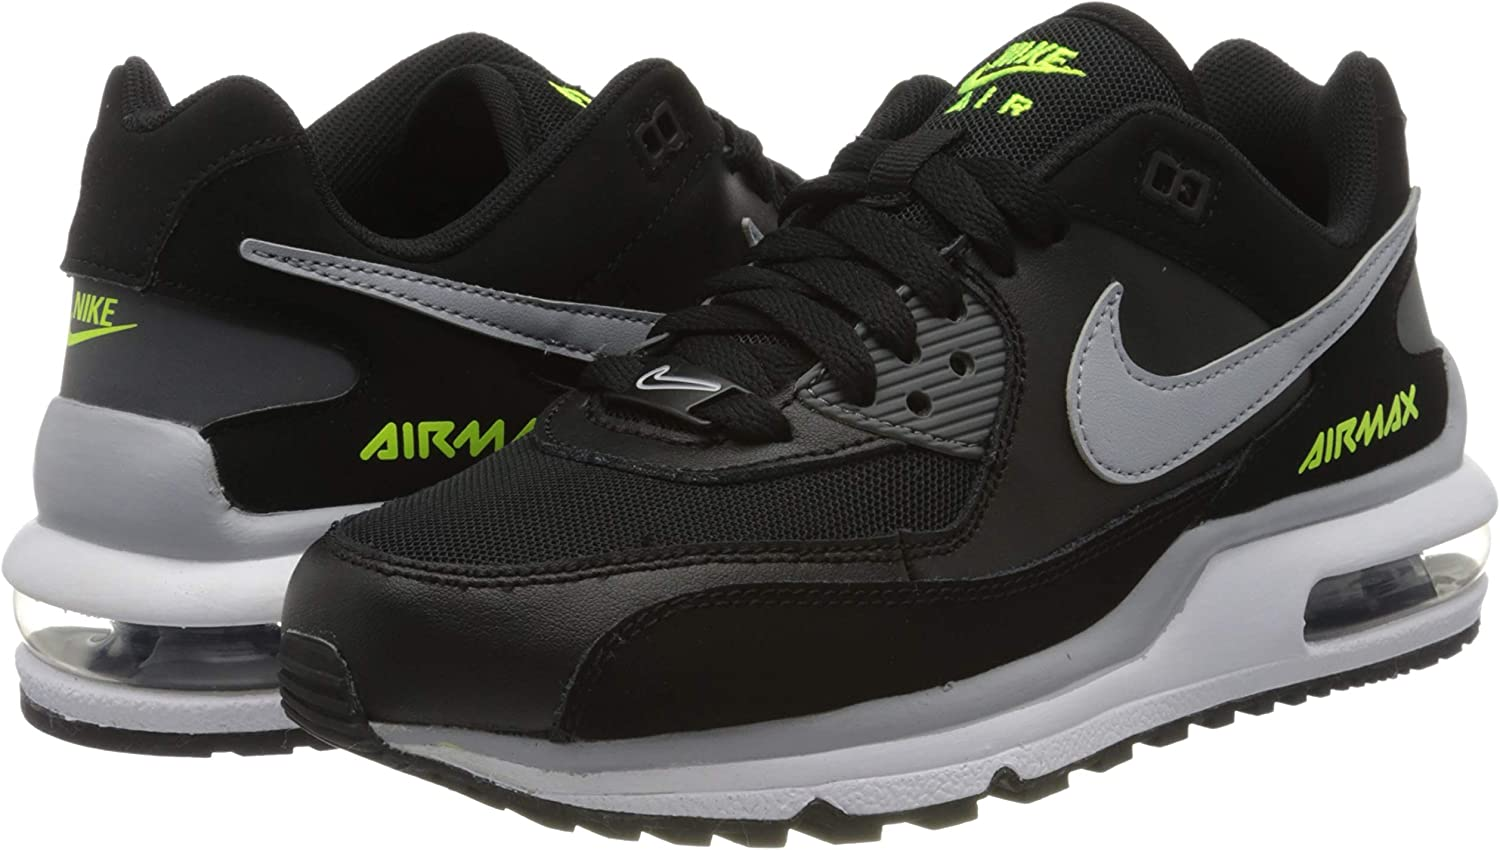 Nike Air Max Wright BG, Sneakers Basses Mixte Enfant